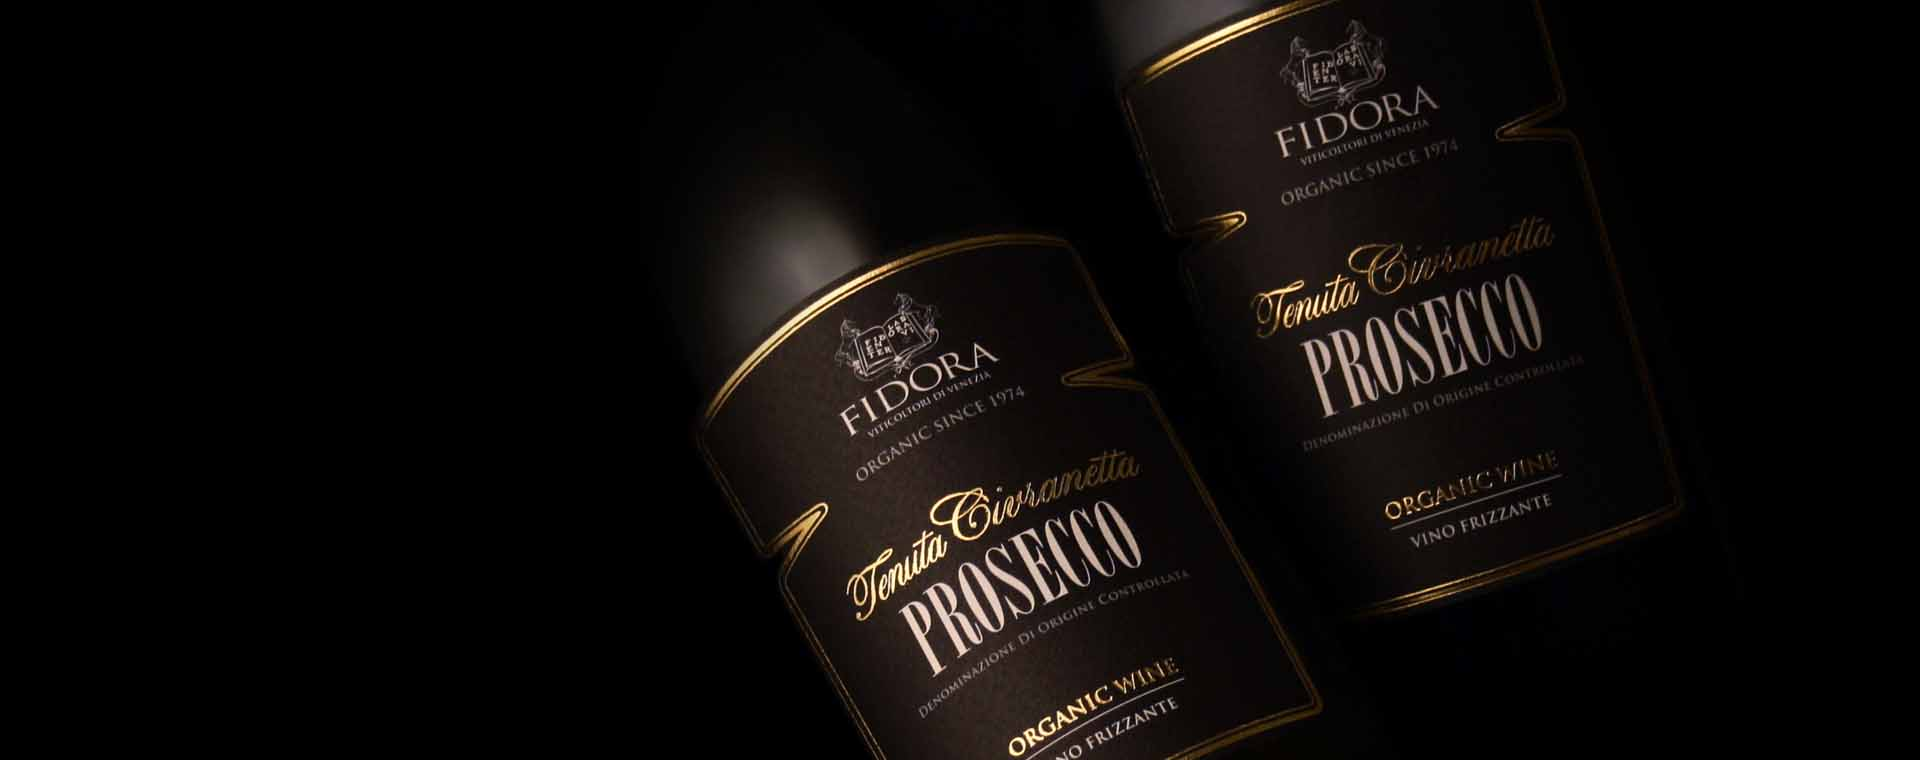 (English) Prosecco Frizzante prova EN